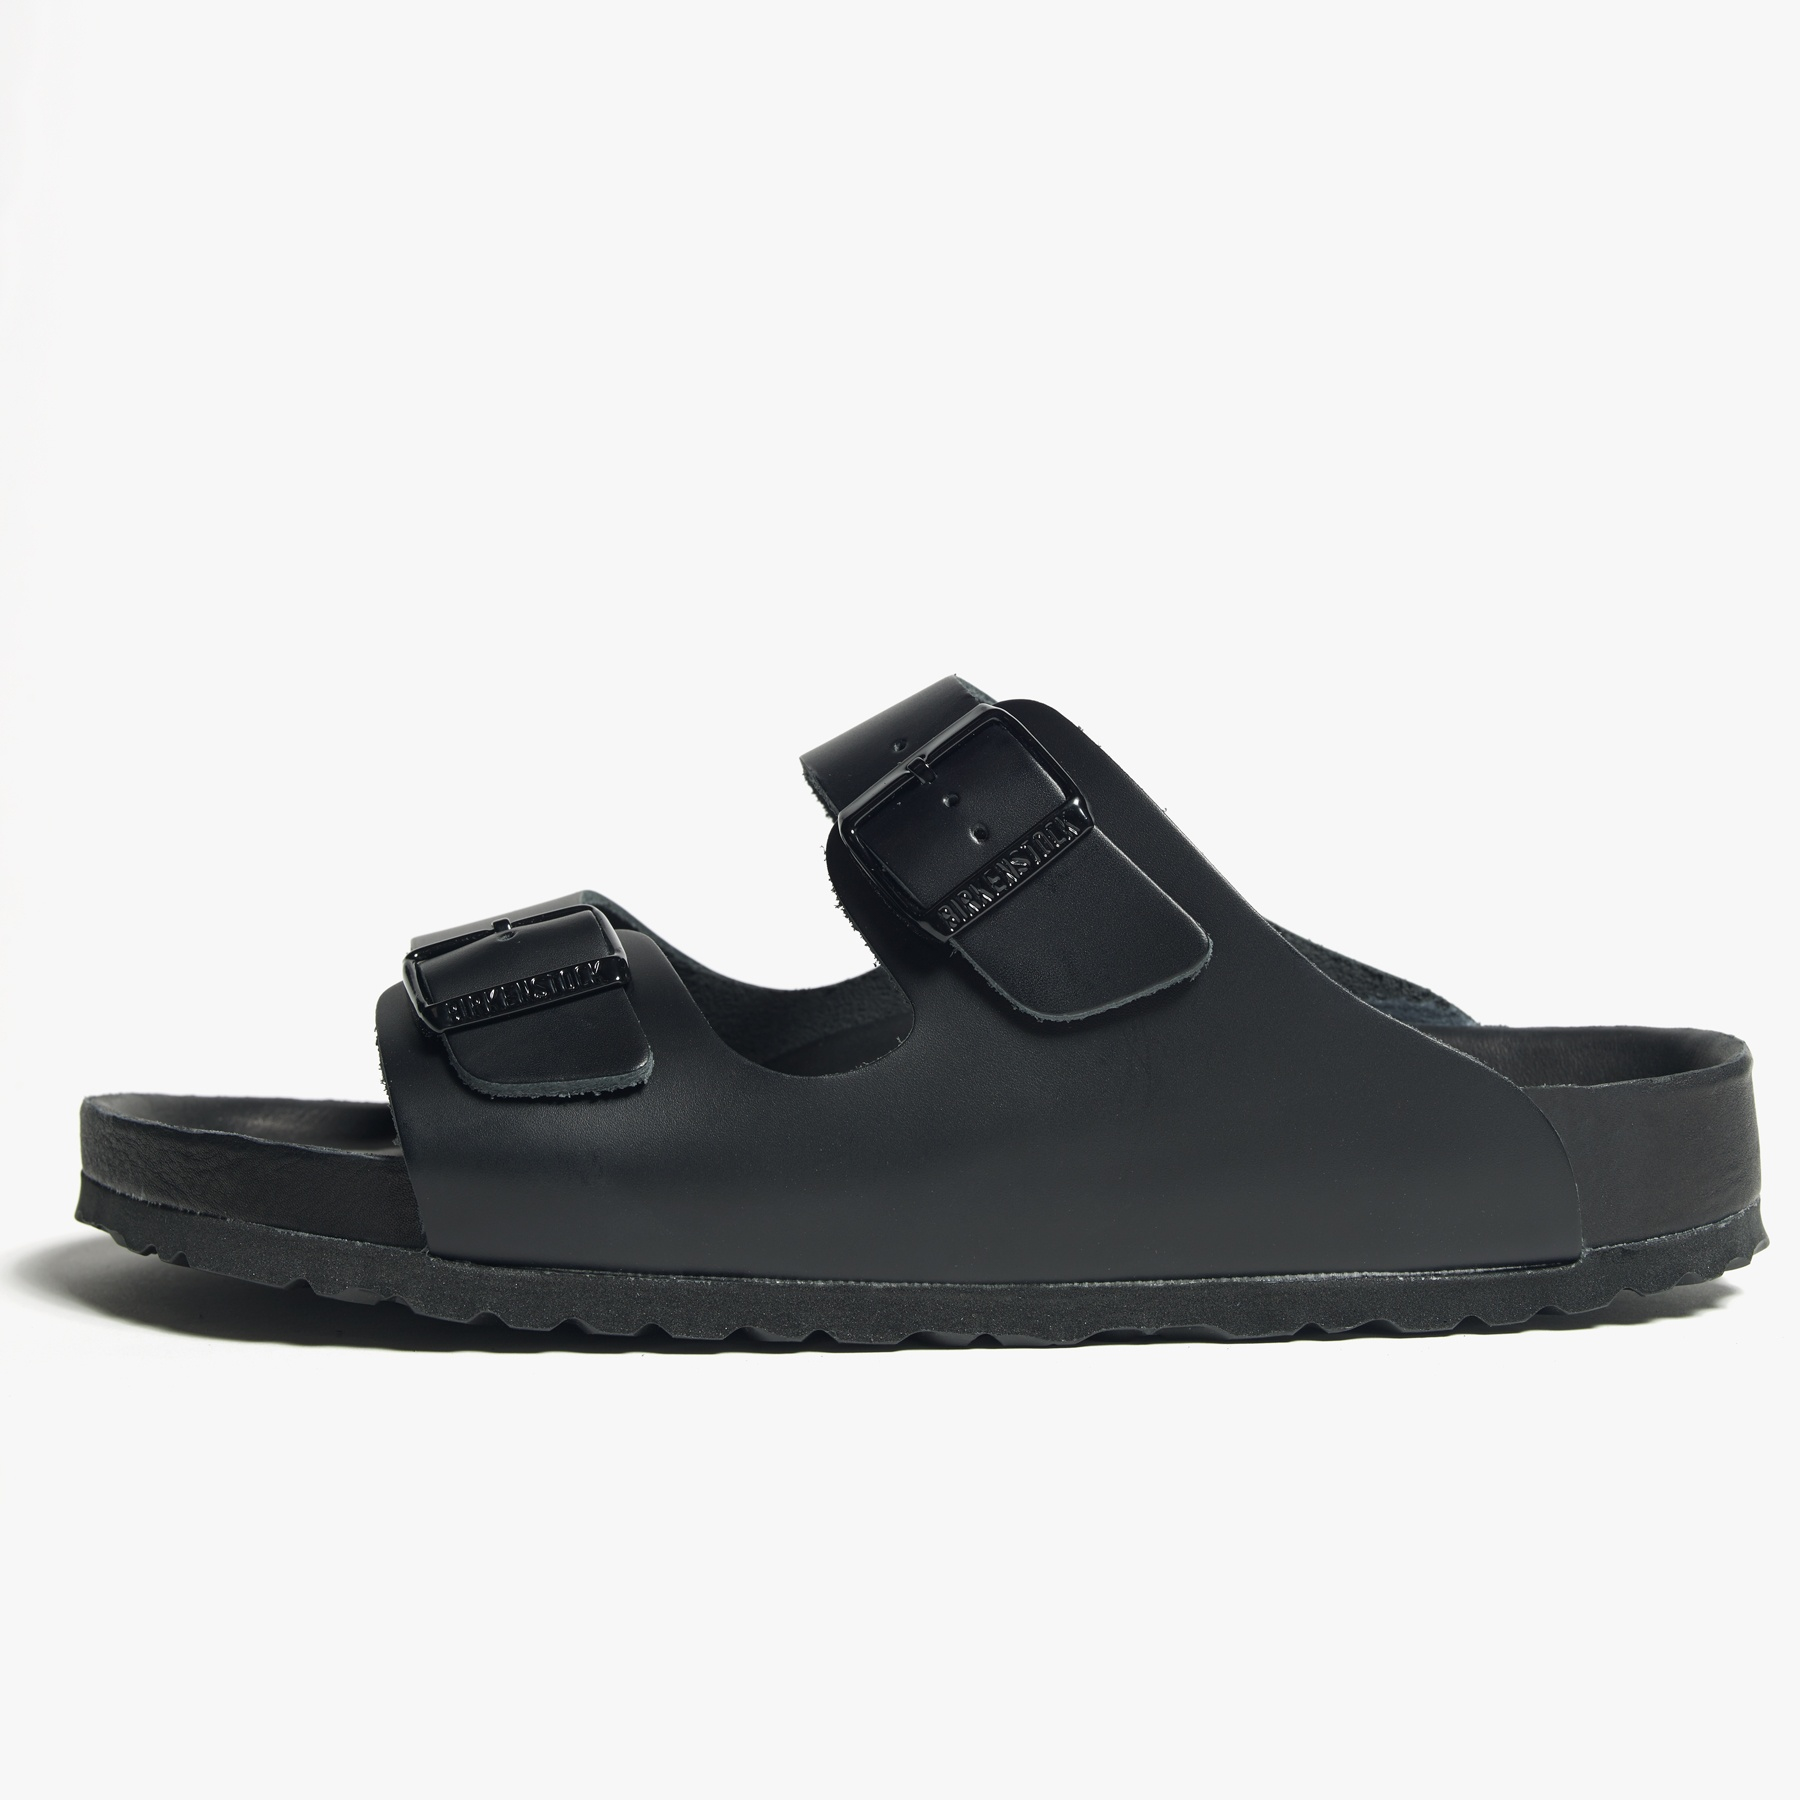 James Perse Birkenstock Monterey Leather Sandal - Mens in Black for ... 51c4f3f2537